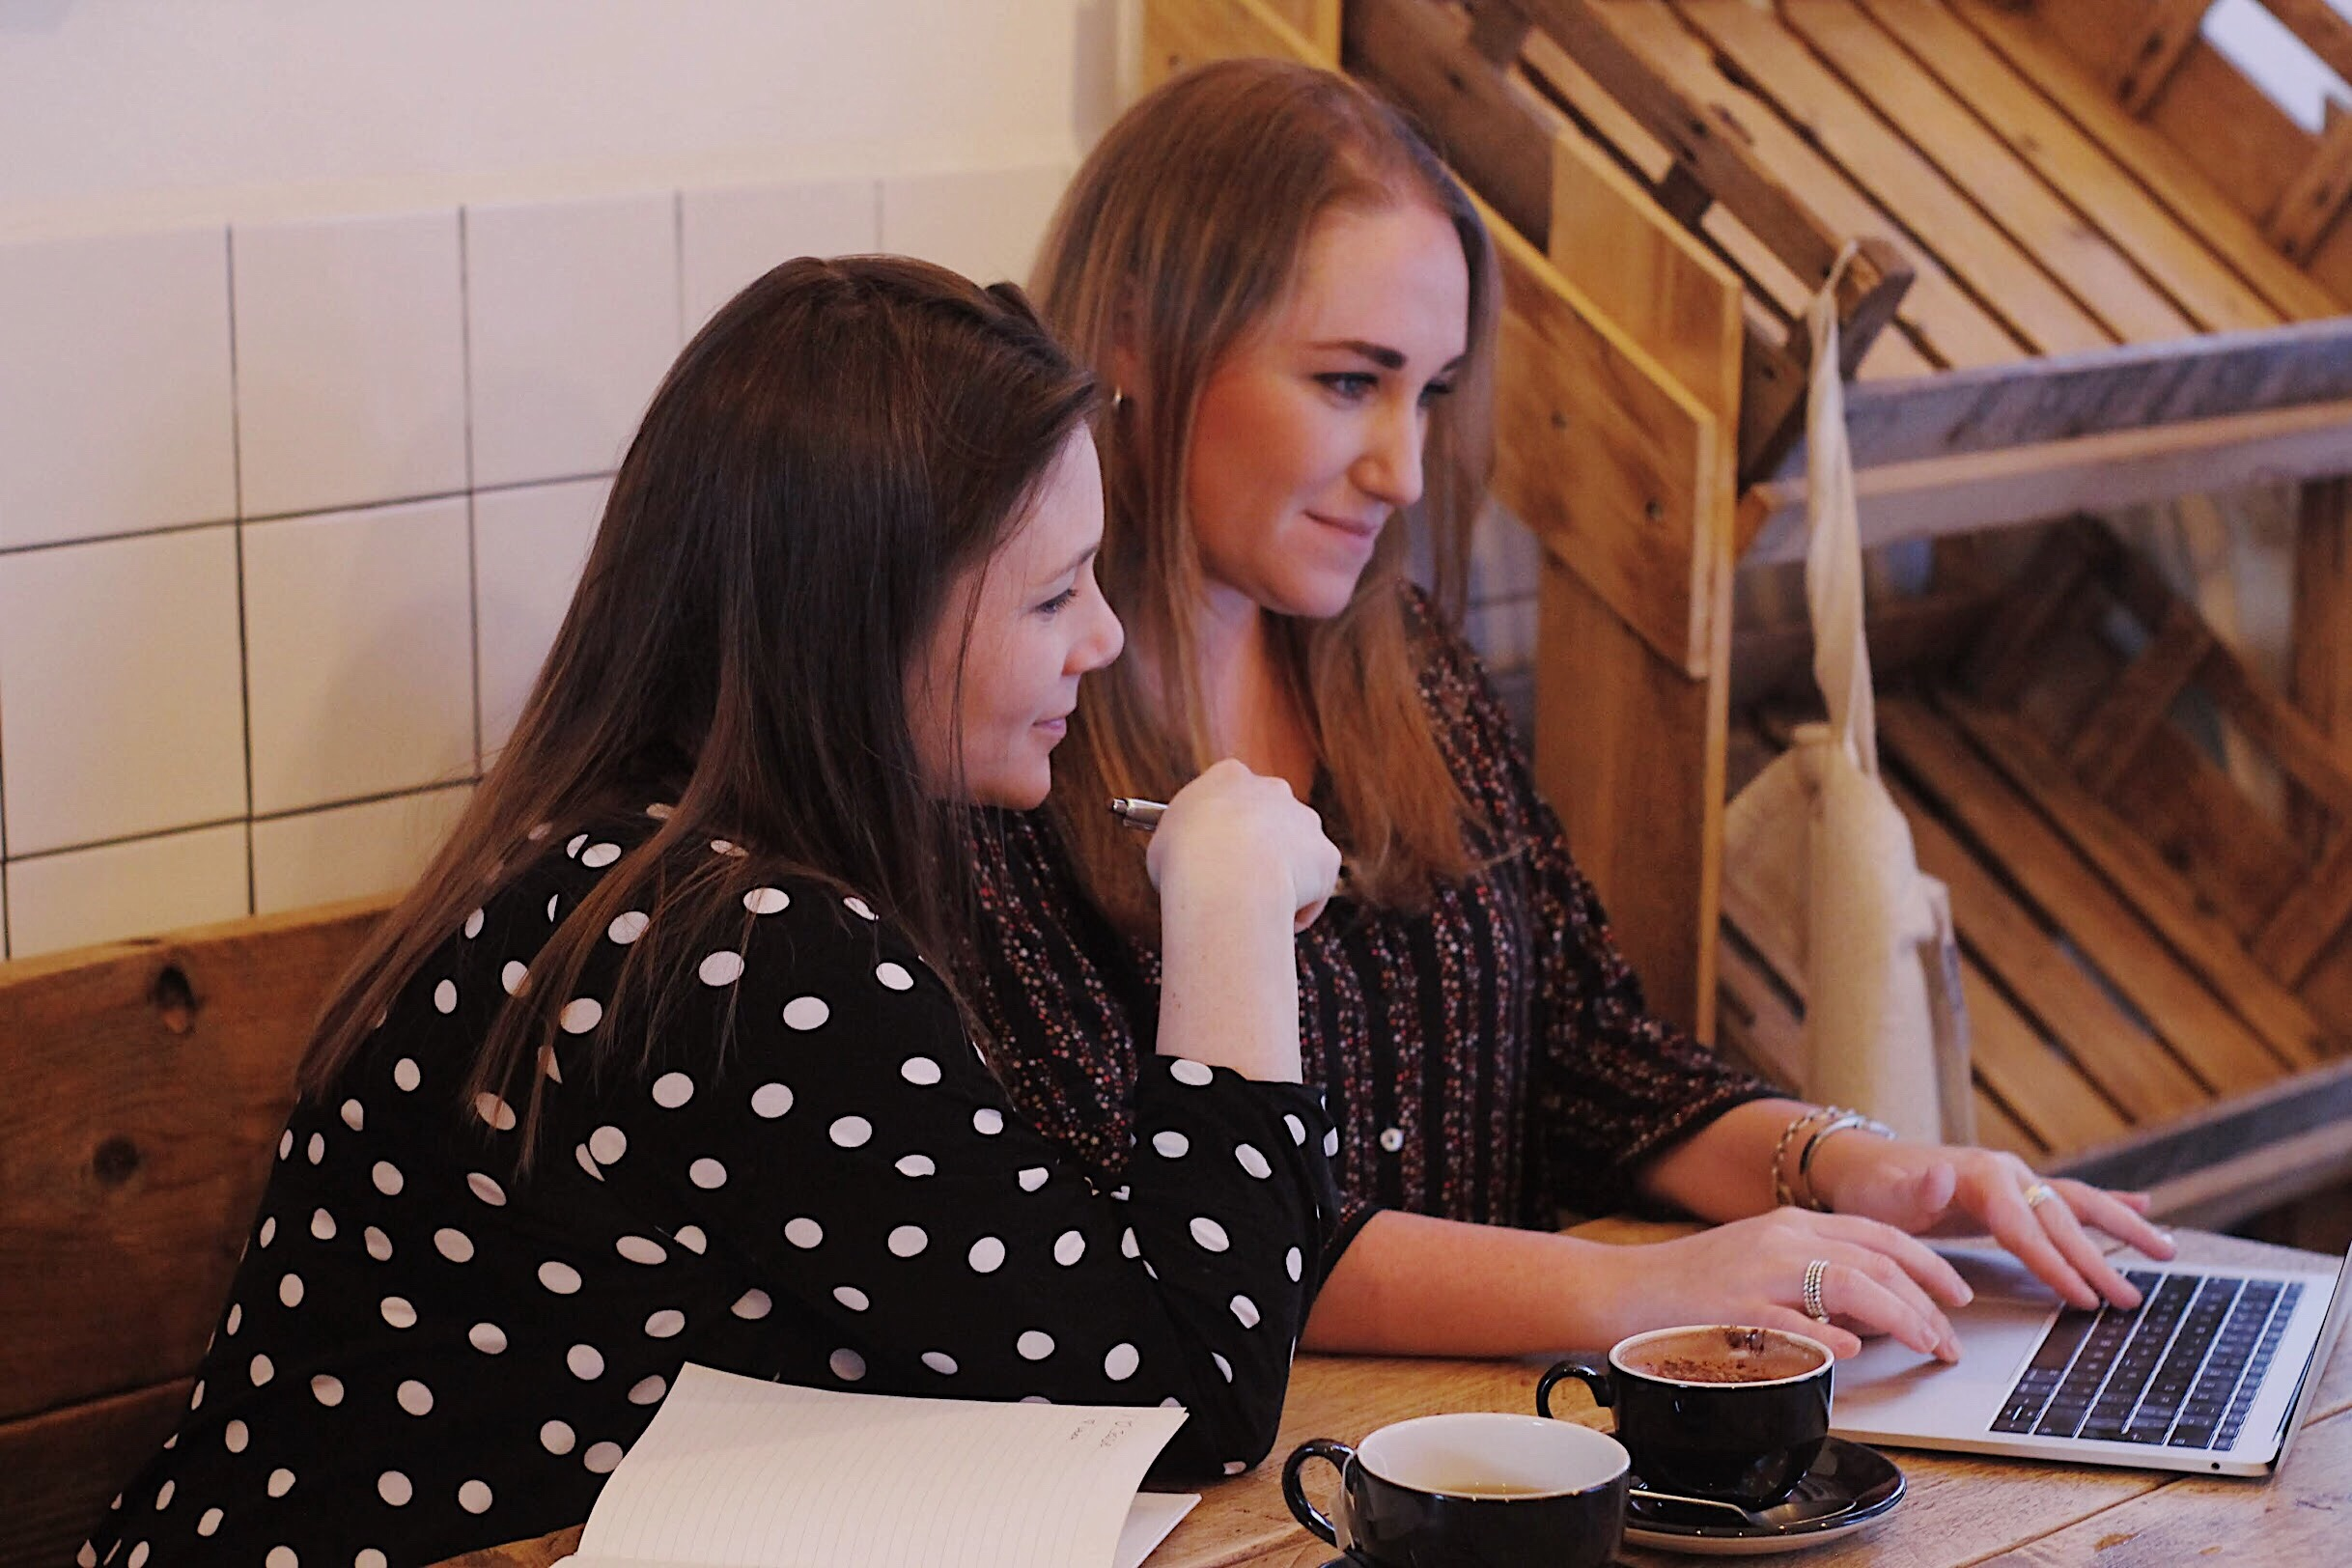 Introducing The Doers - Meet Jess and Laura, the brains behind The Doers, a collective of hand-picked freelancers working across the marketing mix. We had the pleasure of talking to them about their views on how to get influencer marketing right, why the agency model is broken and why community over competition is so important when operating in the freelance world.